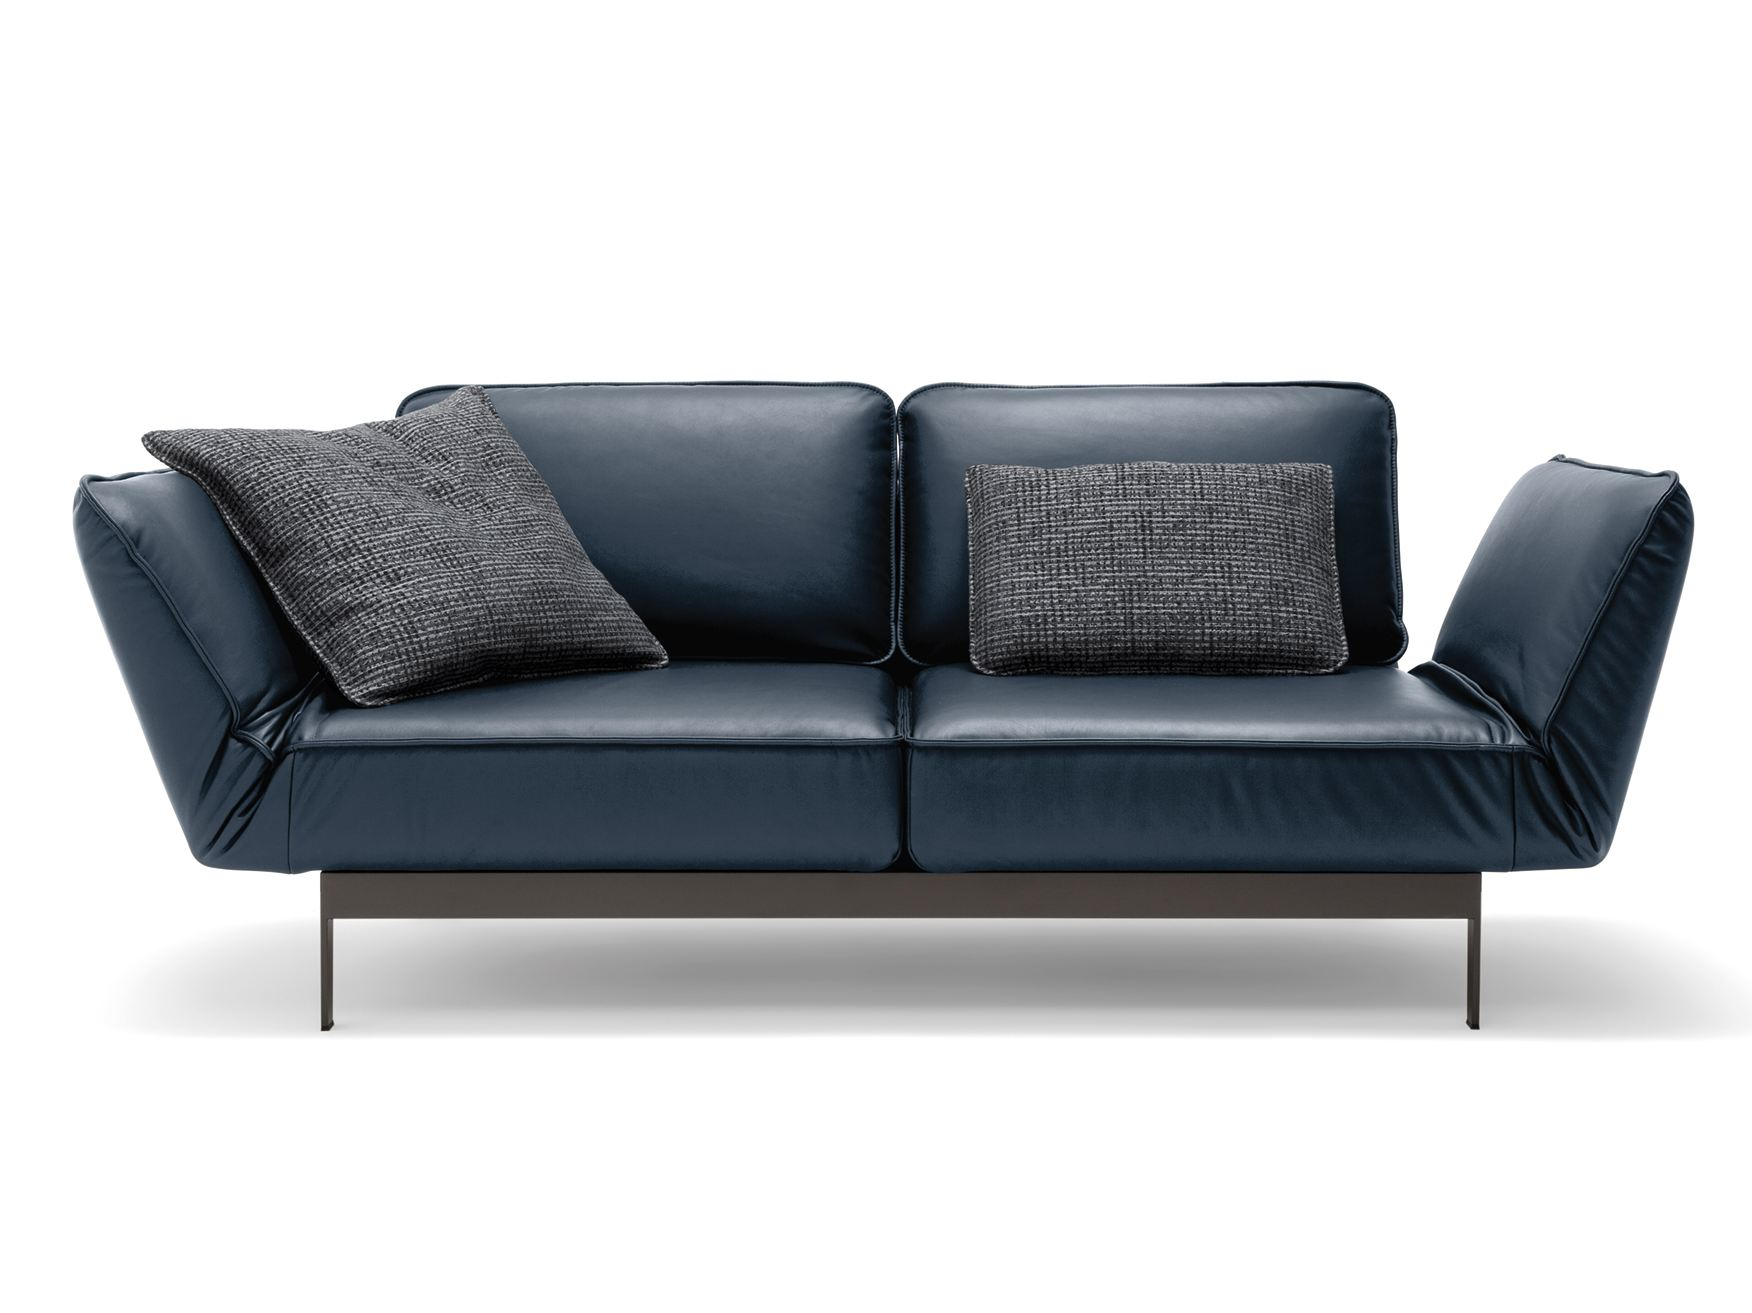 vero sofa design rolf benz. Gallery Of Mera Sofa With Chaise Longue Collection By Rolf Benz Design Beck Couch Leder Vero